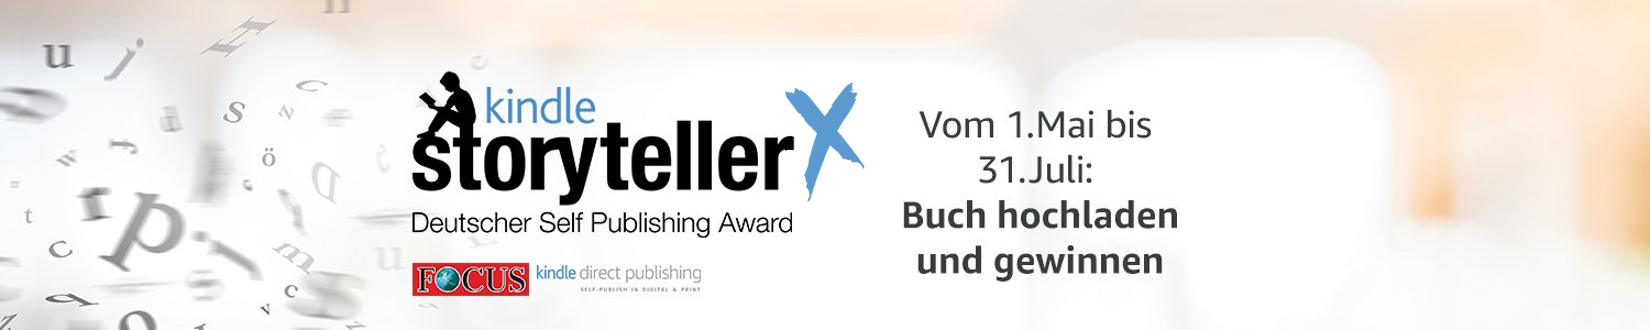 Kindle Storyteller - Deutscher Self Publishing Award